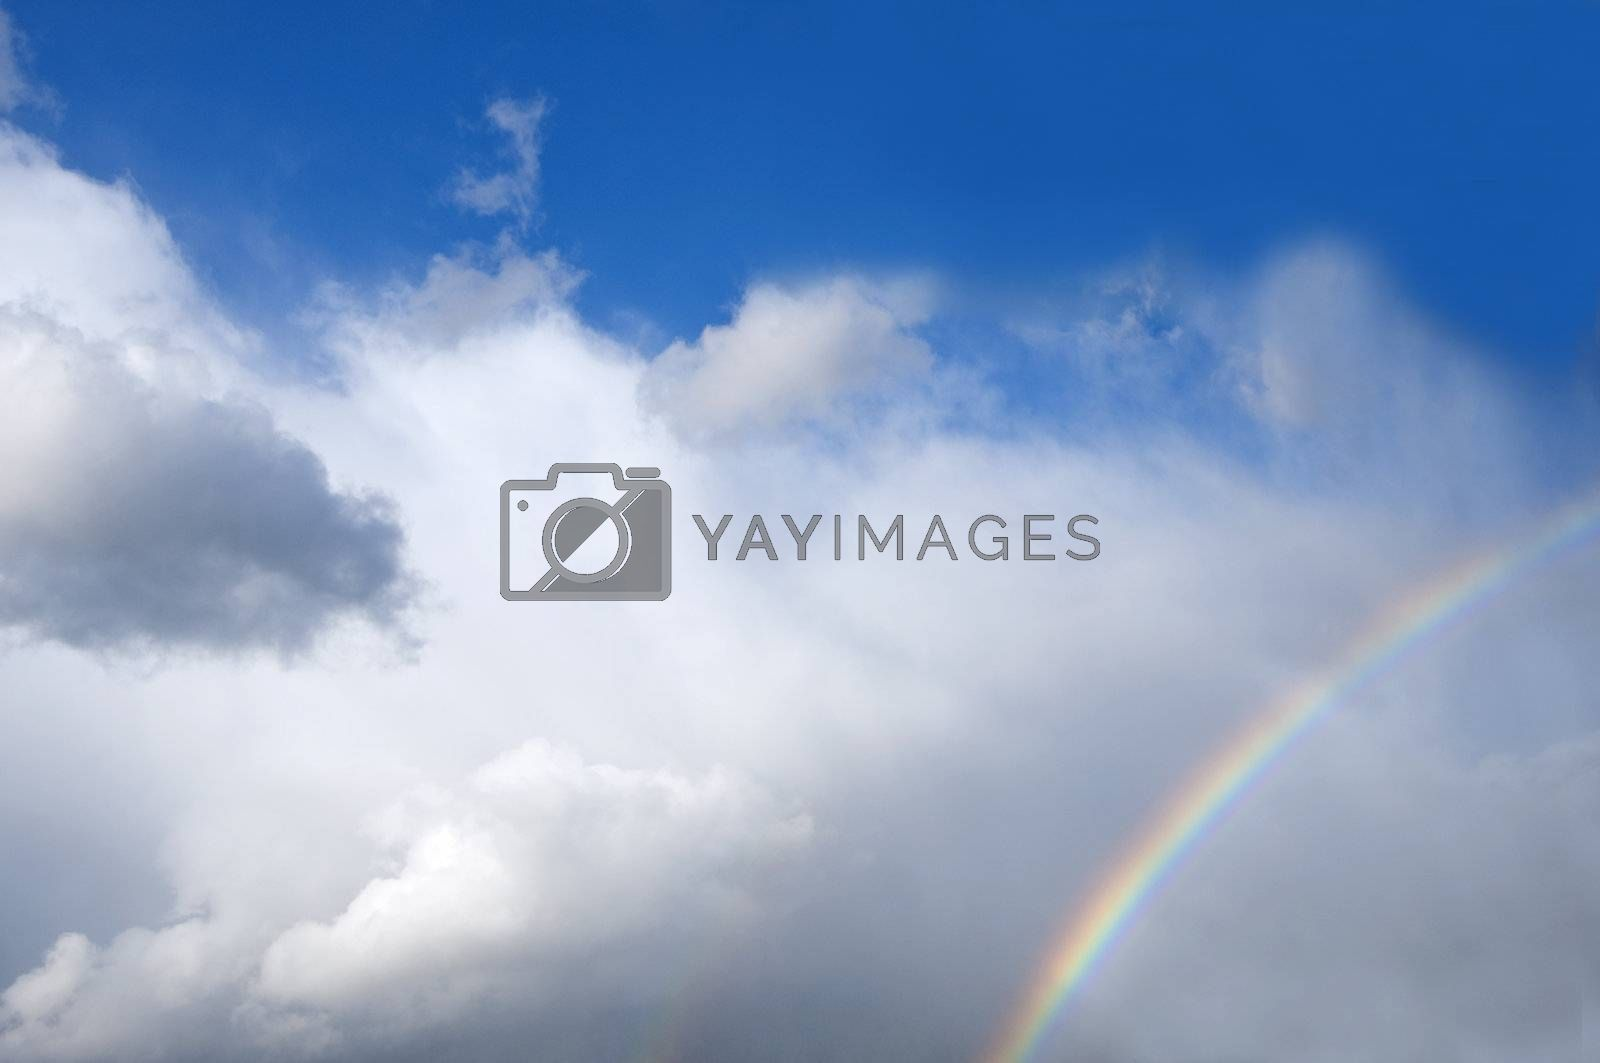 two rainbows in the sky filled with white clouds